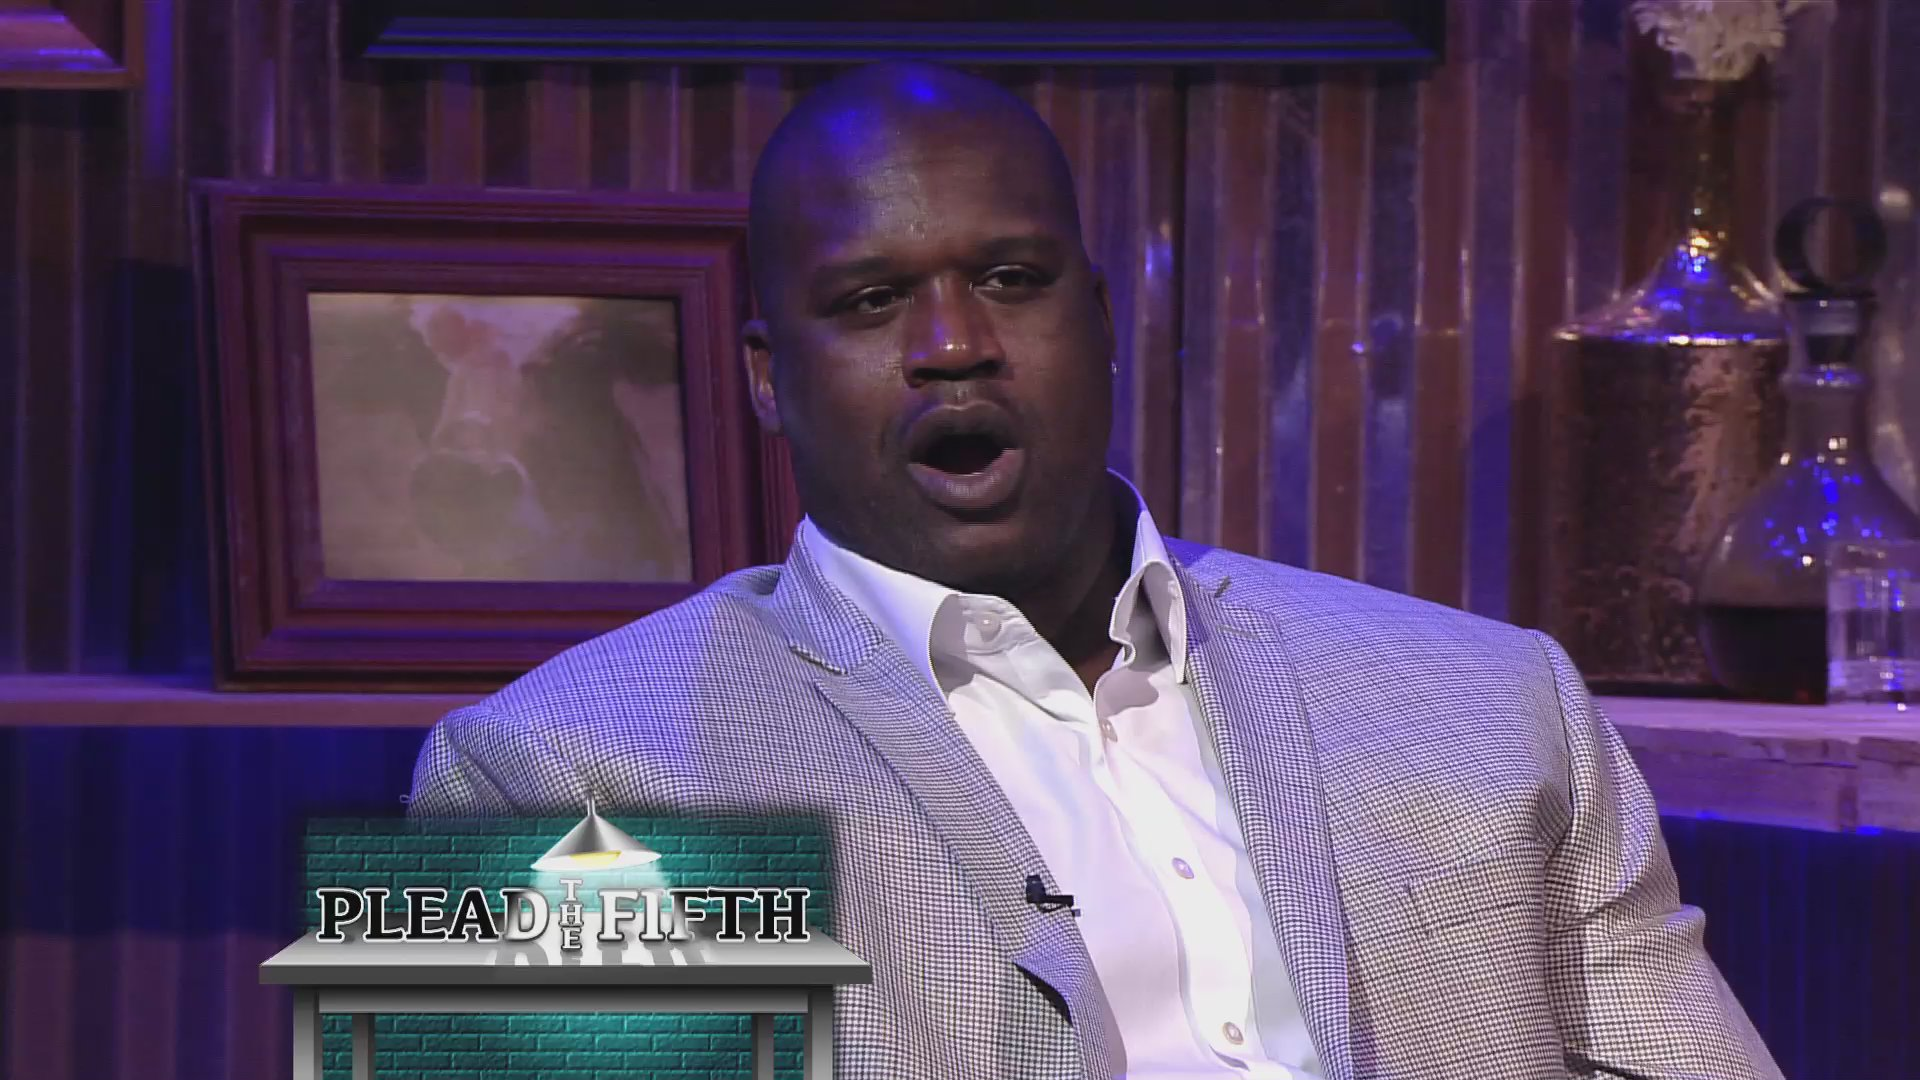 How Hung Is Shaq?